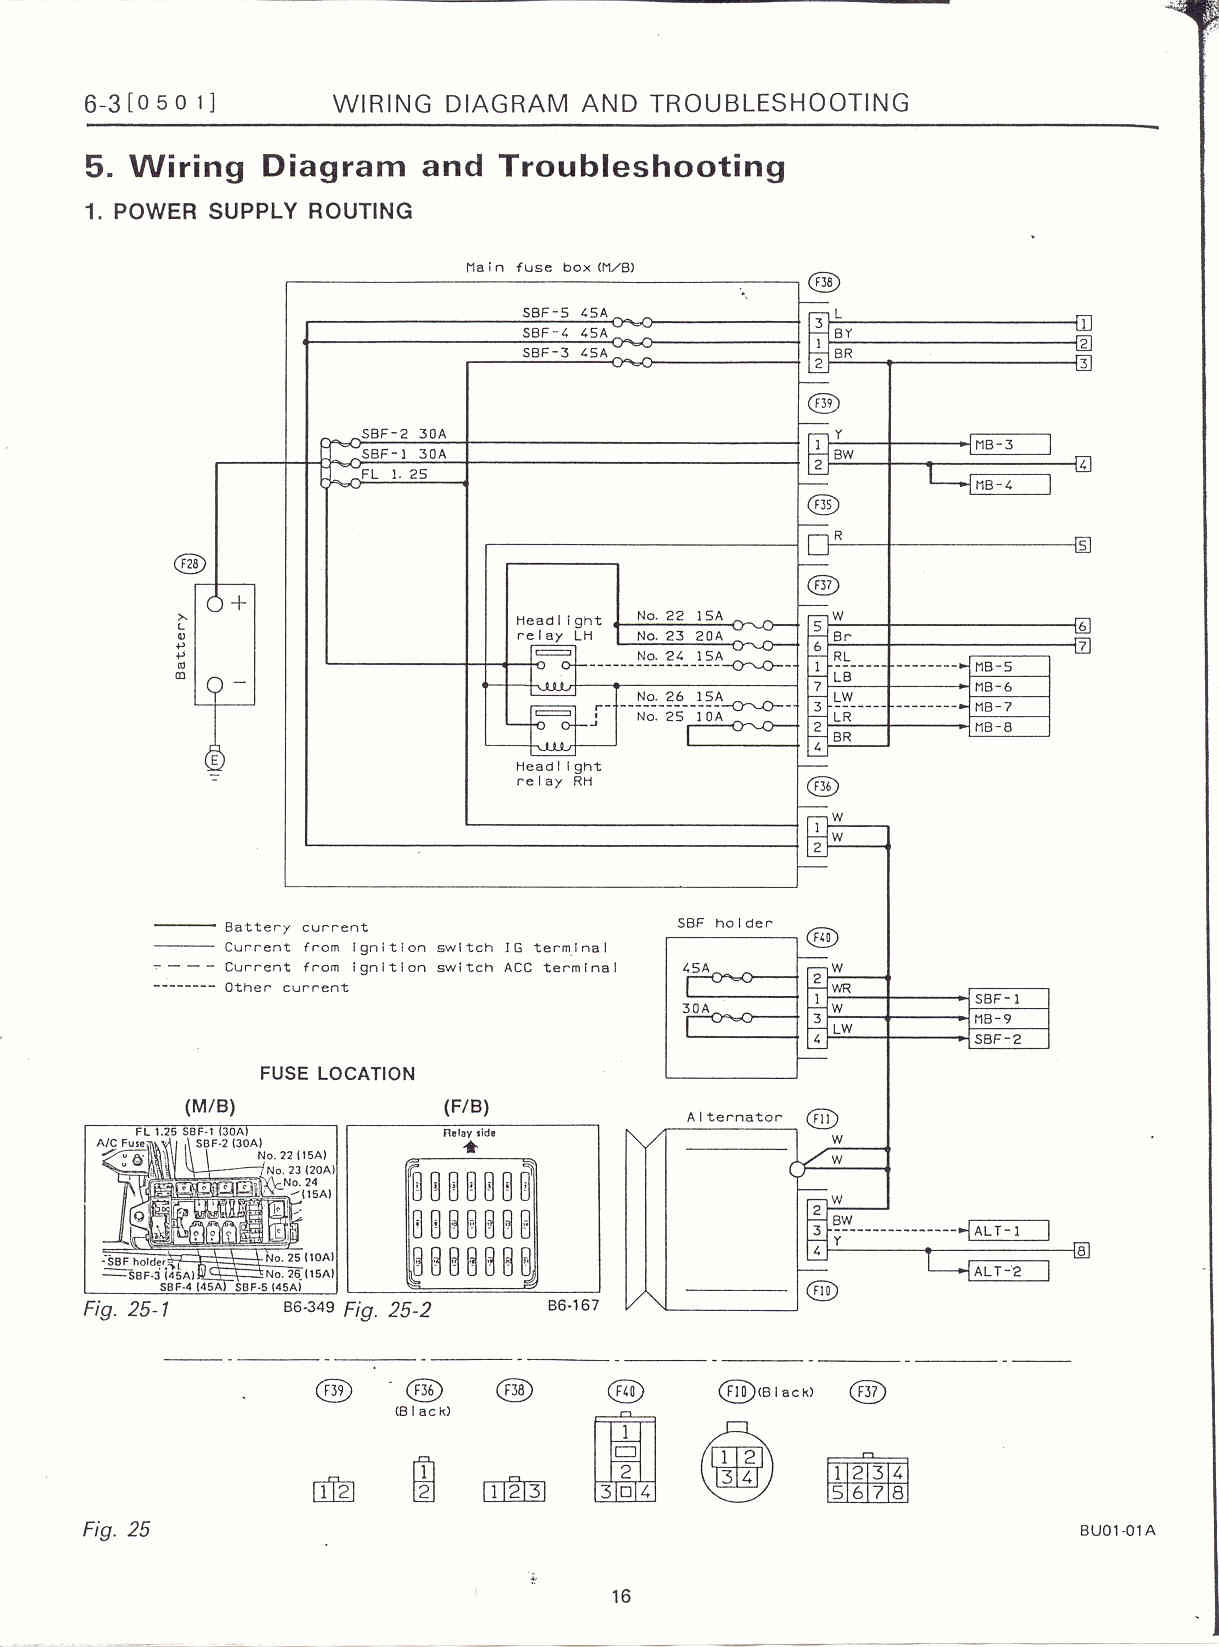 6 3_power_supply_routing1?resize\=665%2C898 1990 subaru legacy with no fuse box 1990 chevy truck fuse box 1990 subaru legacy fuse box diagram at panicattacktreatment.co